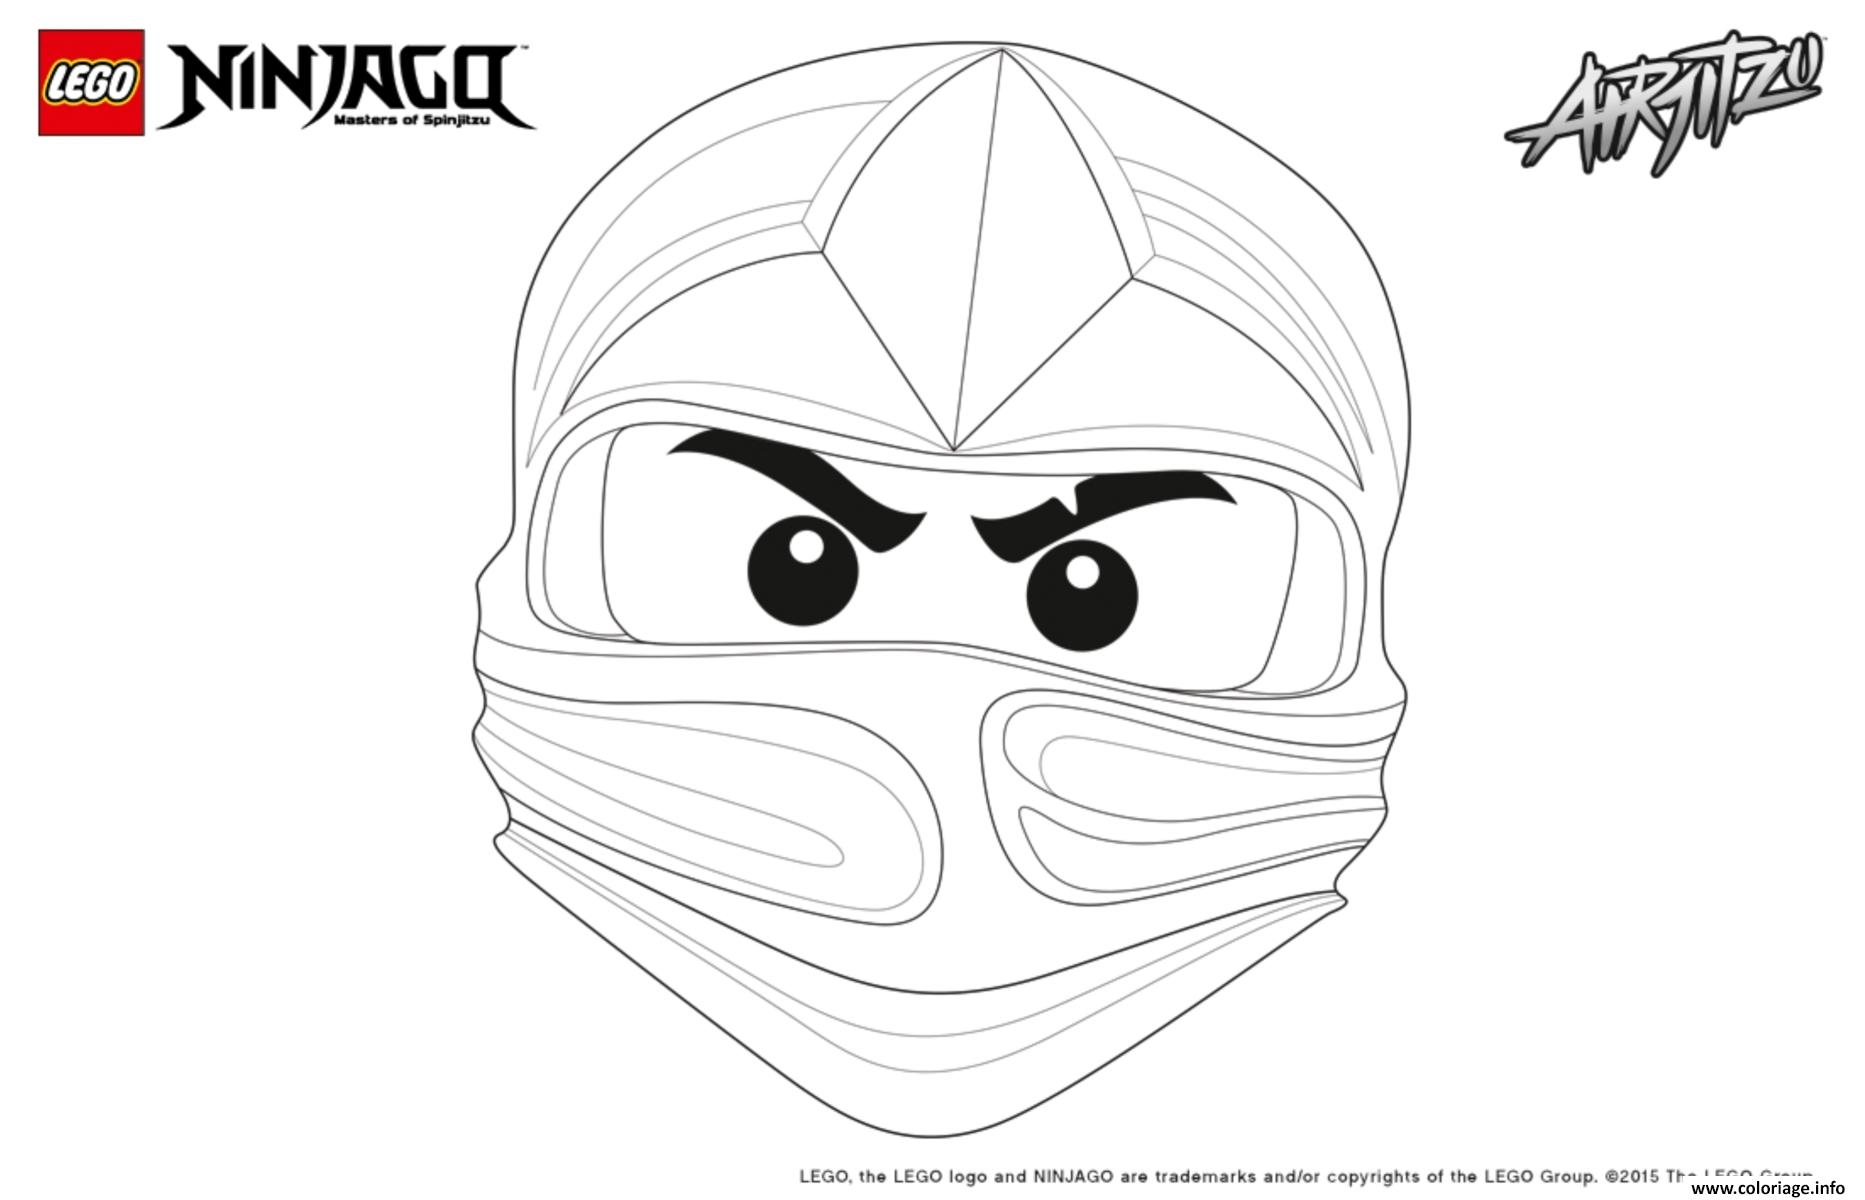 Lego Ninjago Coloring Pages To Print Coloring Pages